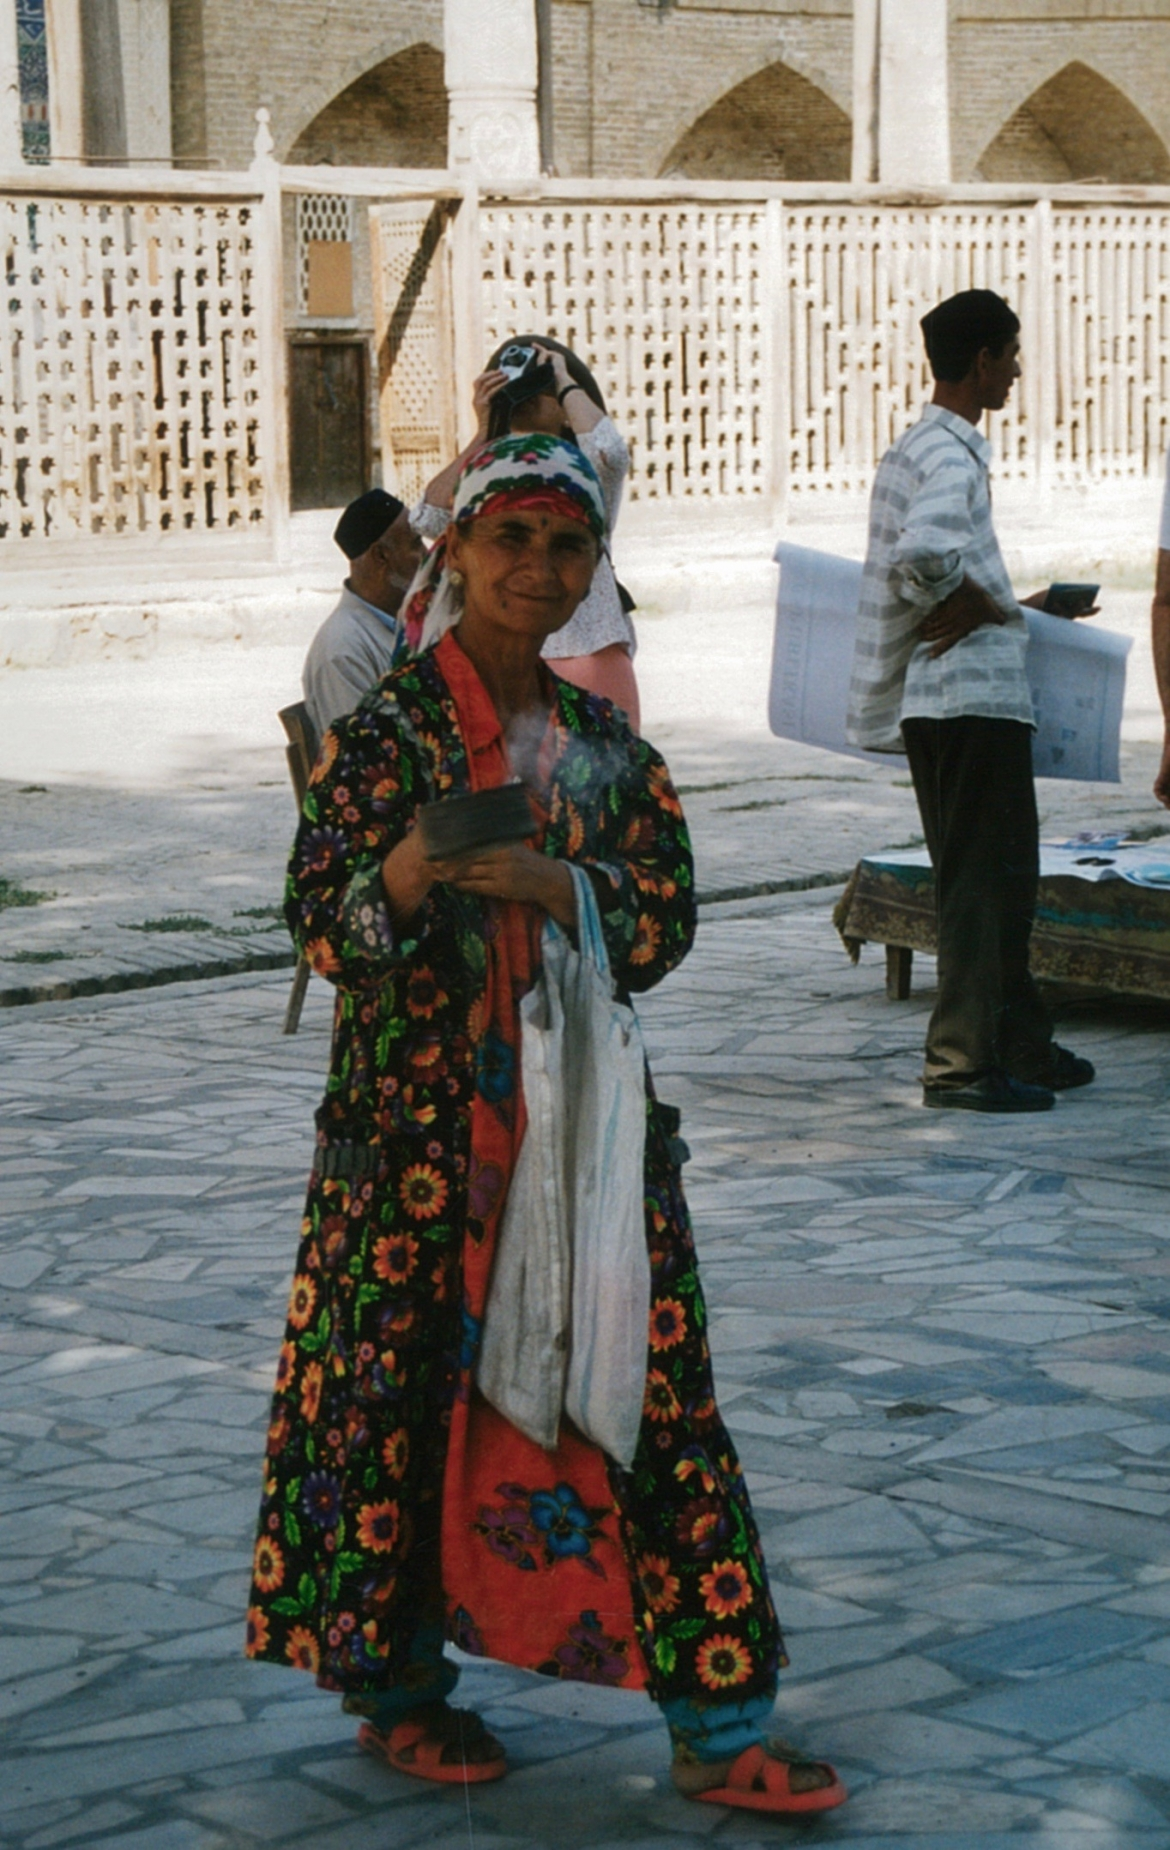 Gypsy woman blessing the passersby with sacred smoke, Samarkand, Uzbekistan.​